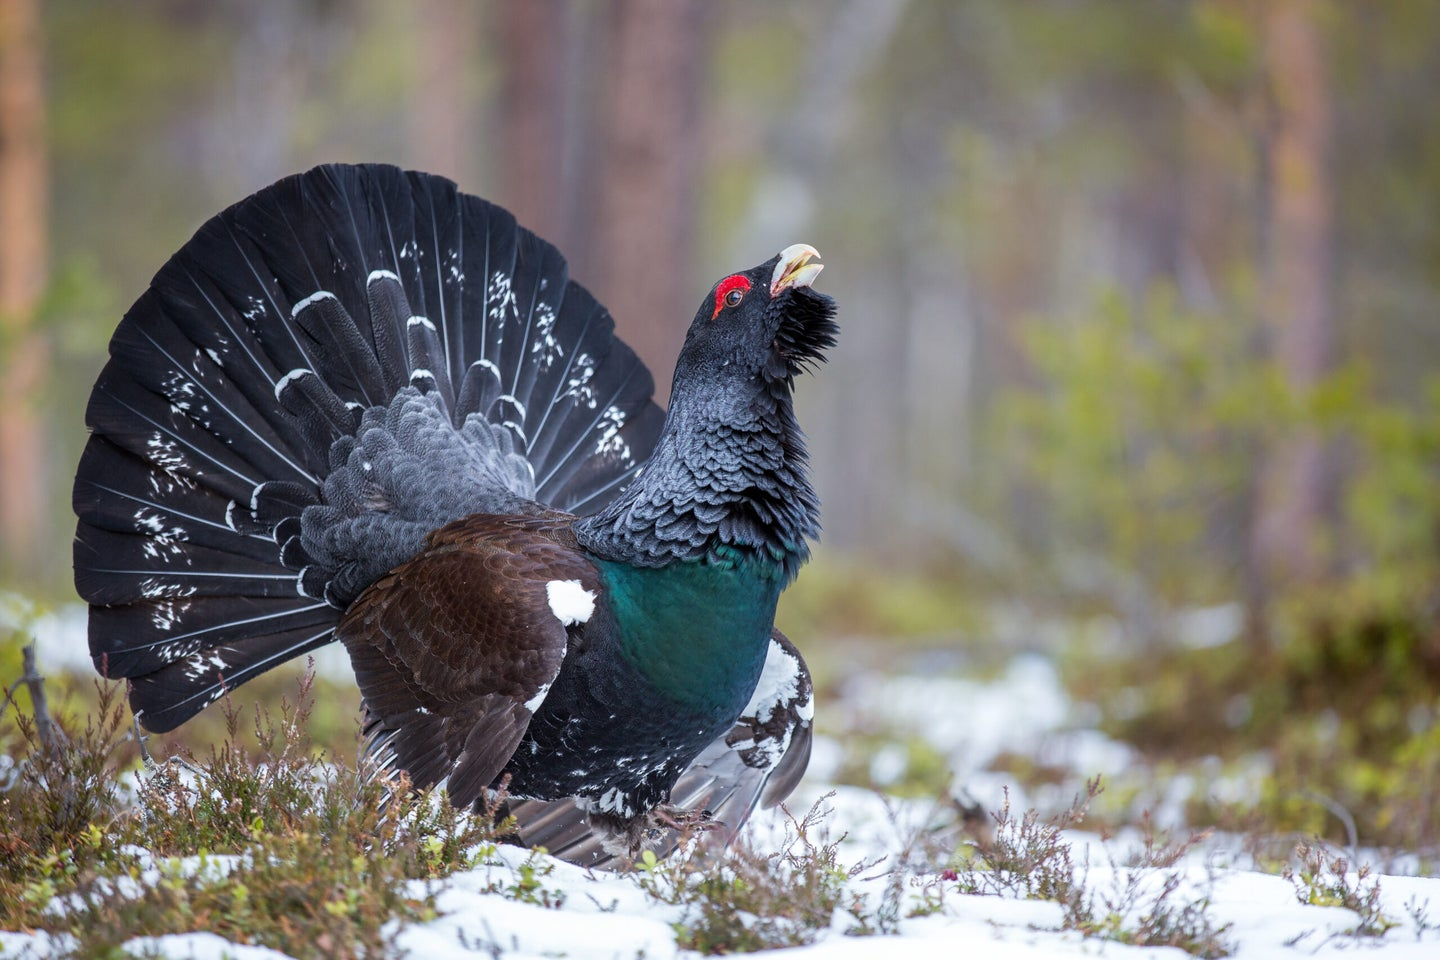 The capercaillie upland bird strutting and calling in the snow.